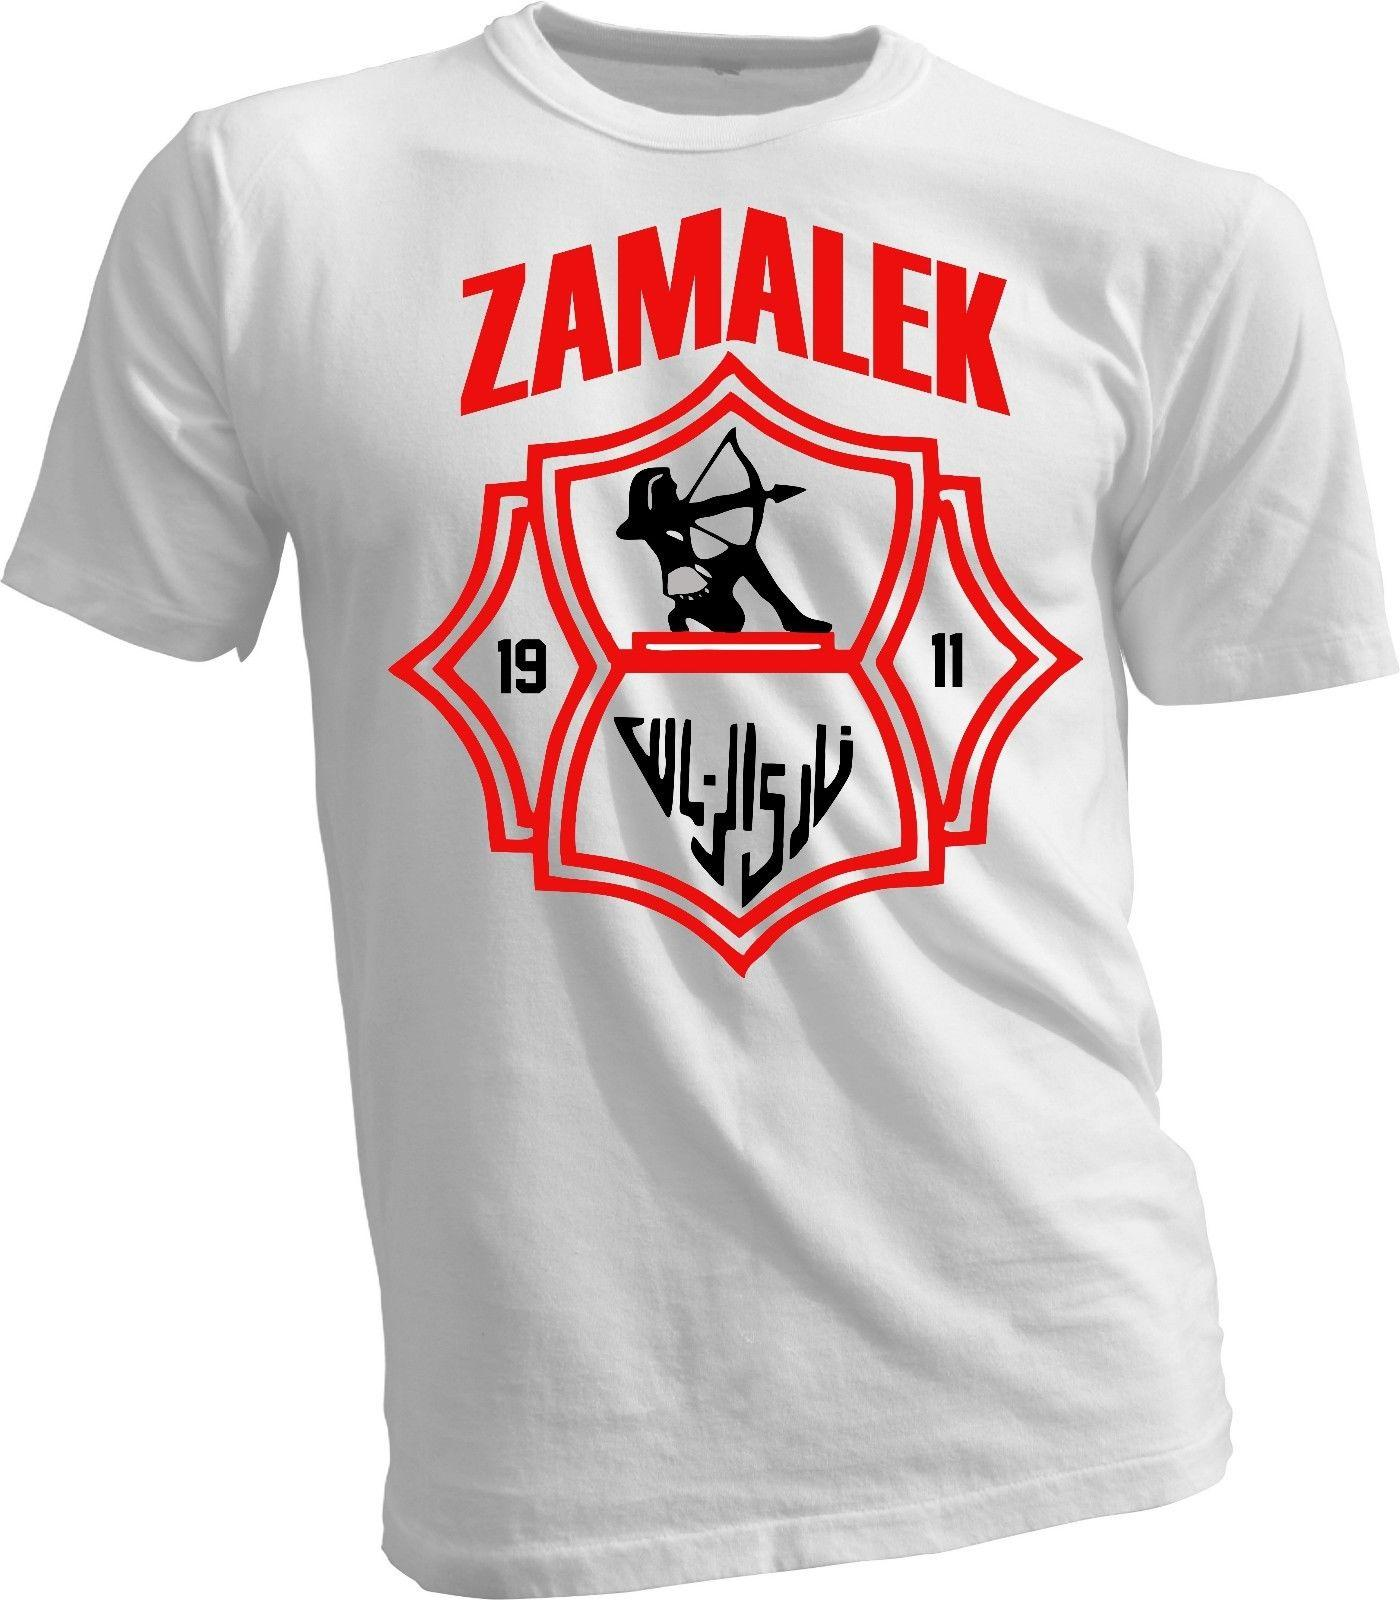 93eb7b2e4 Zamalek Sporting Club Of Egypt Football Soccer T Shirt Tee Unisex New  Handmade Funny Unisex Casual Gift Design Tee Shirts T Shirt Funny From  Superstartees